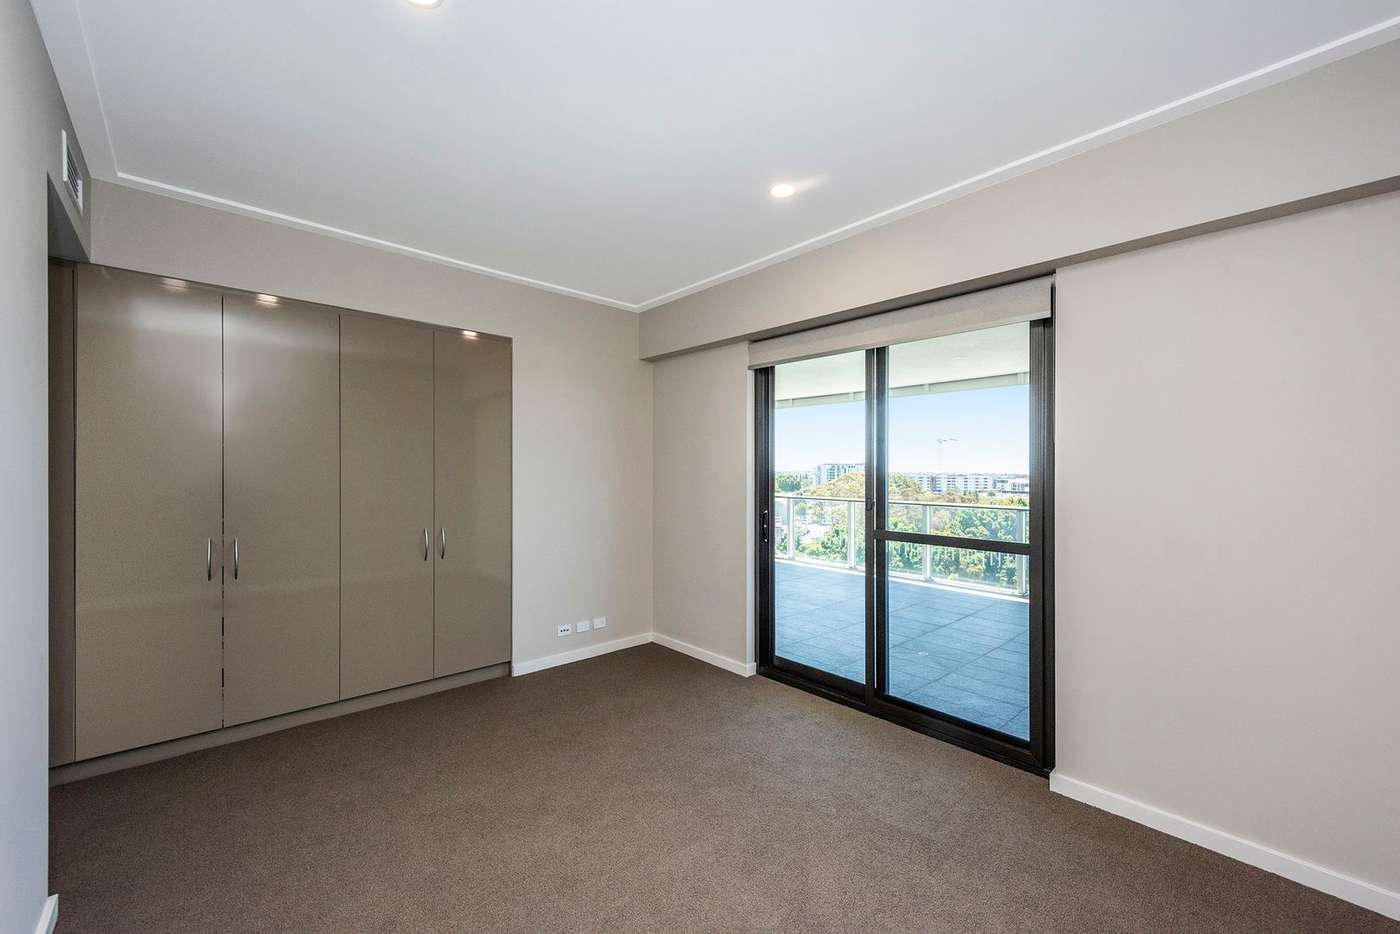 Seventh view of Homely apartment listing, 605/118 Goodwood Parade, Burswood WA 6100